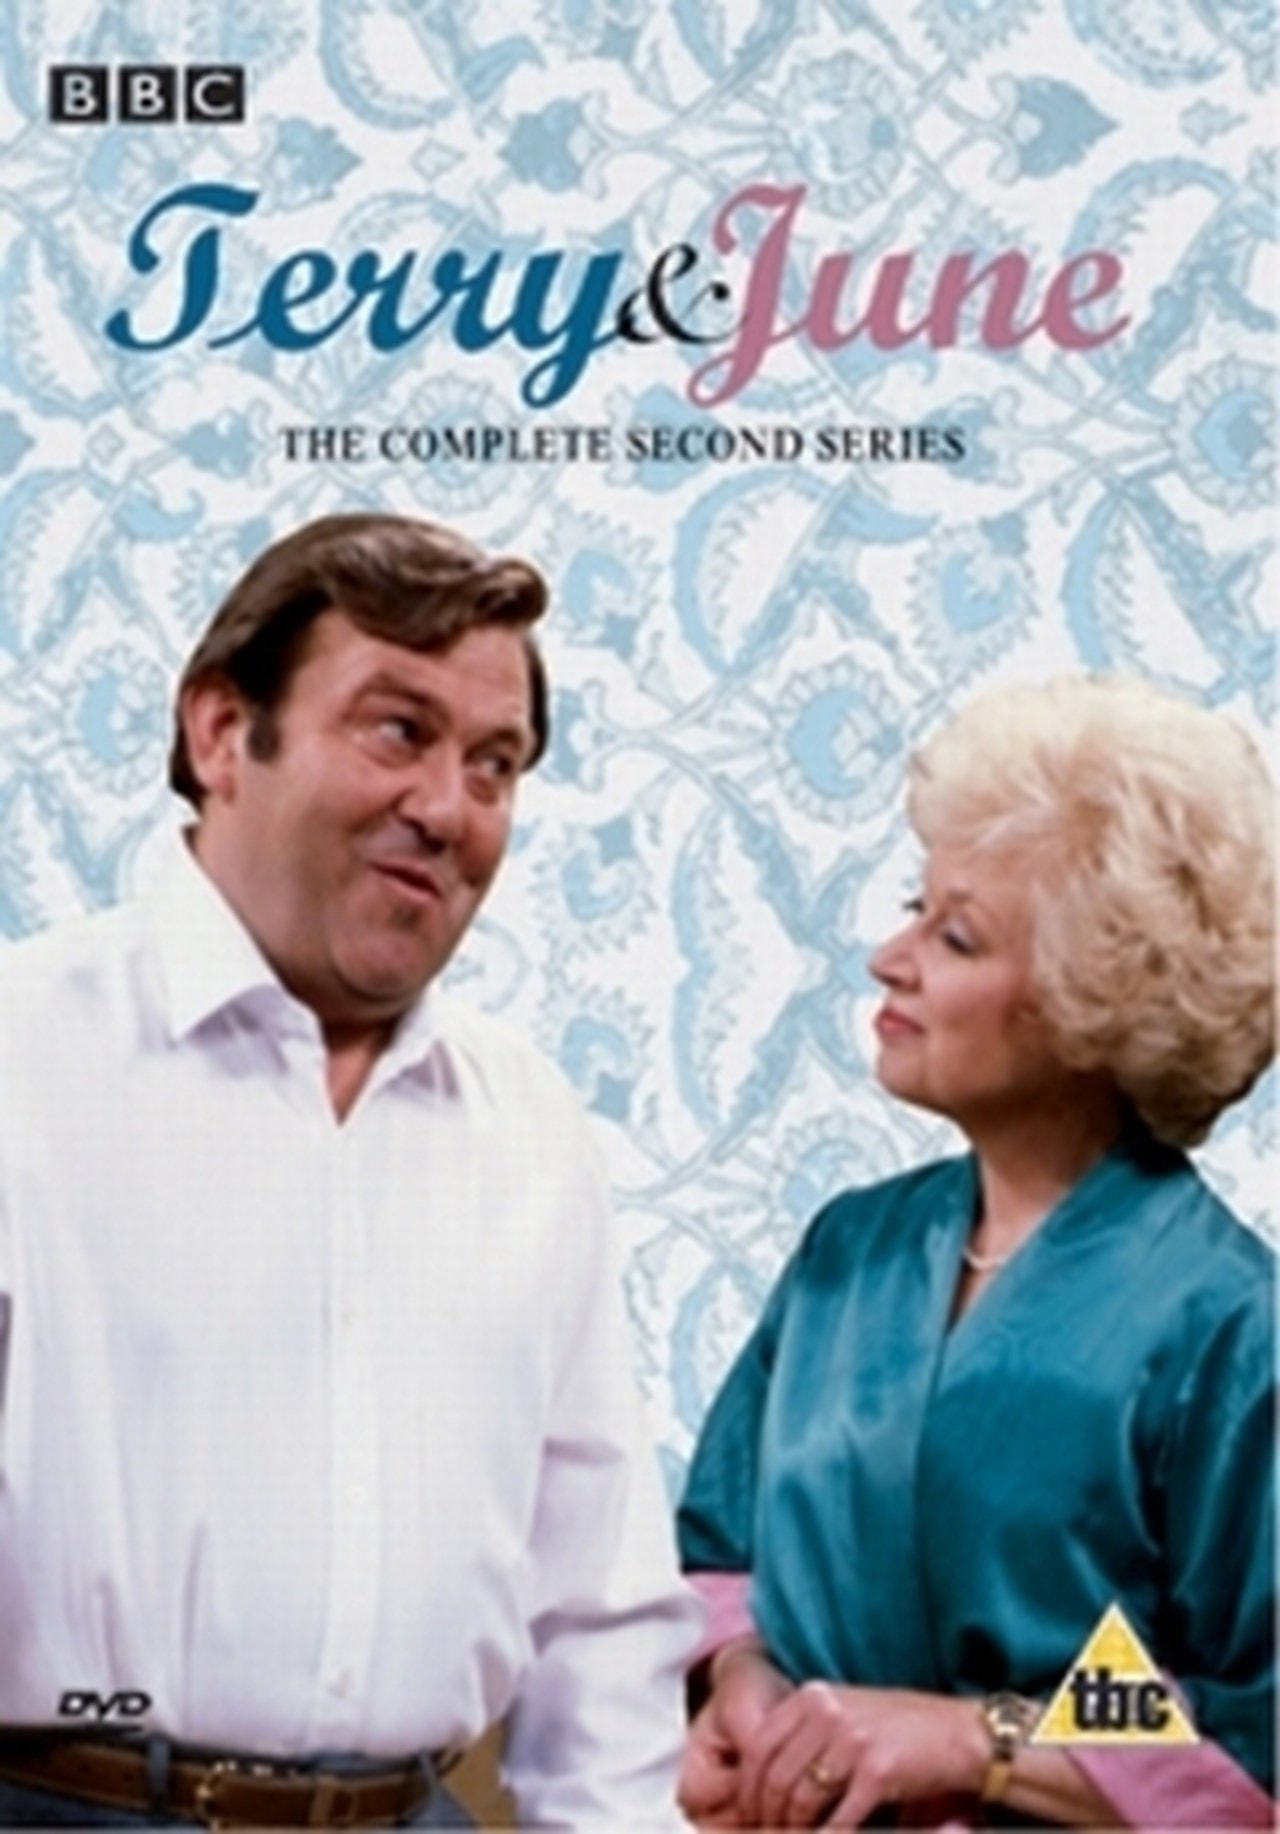 Terry and June: The Complete Second Series - 1